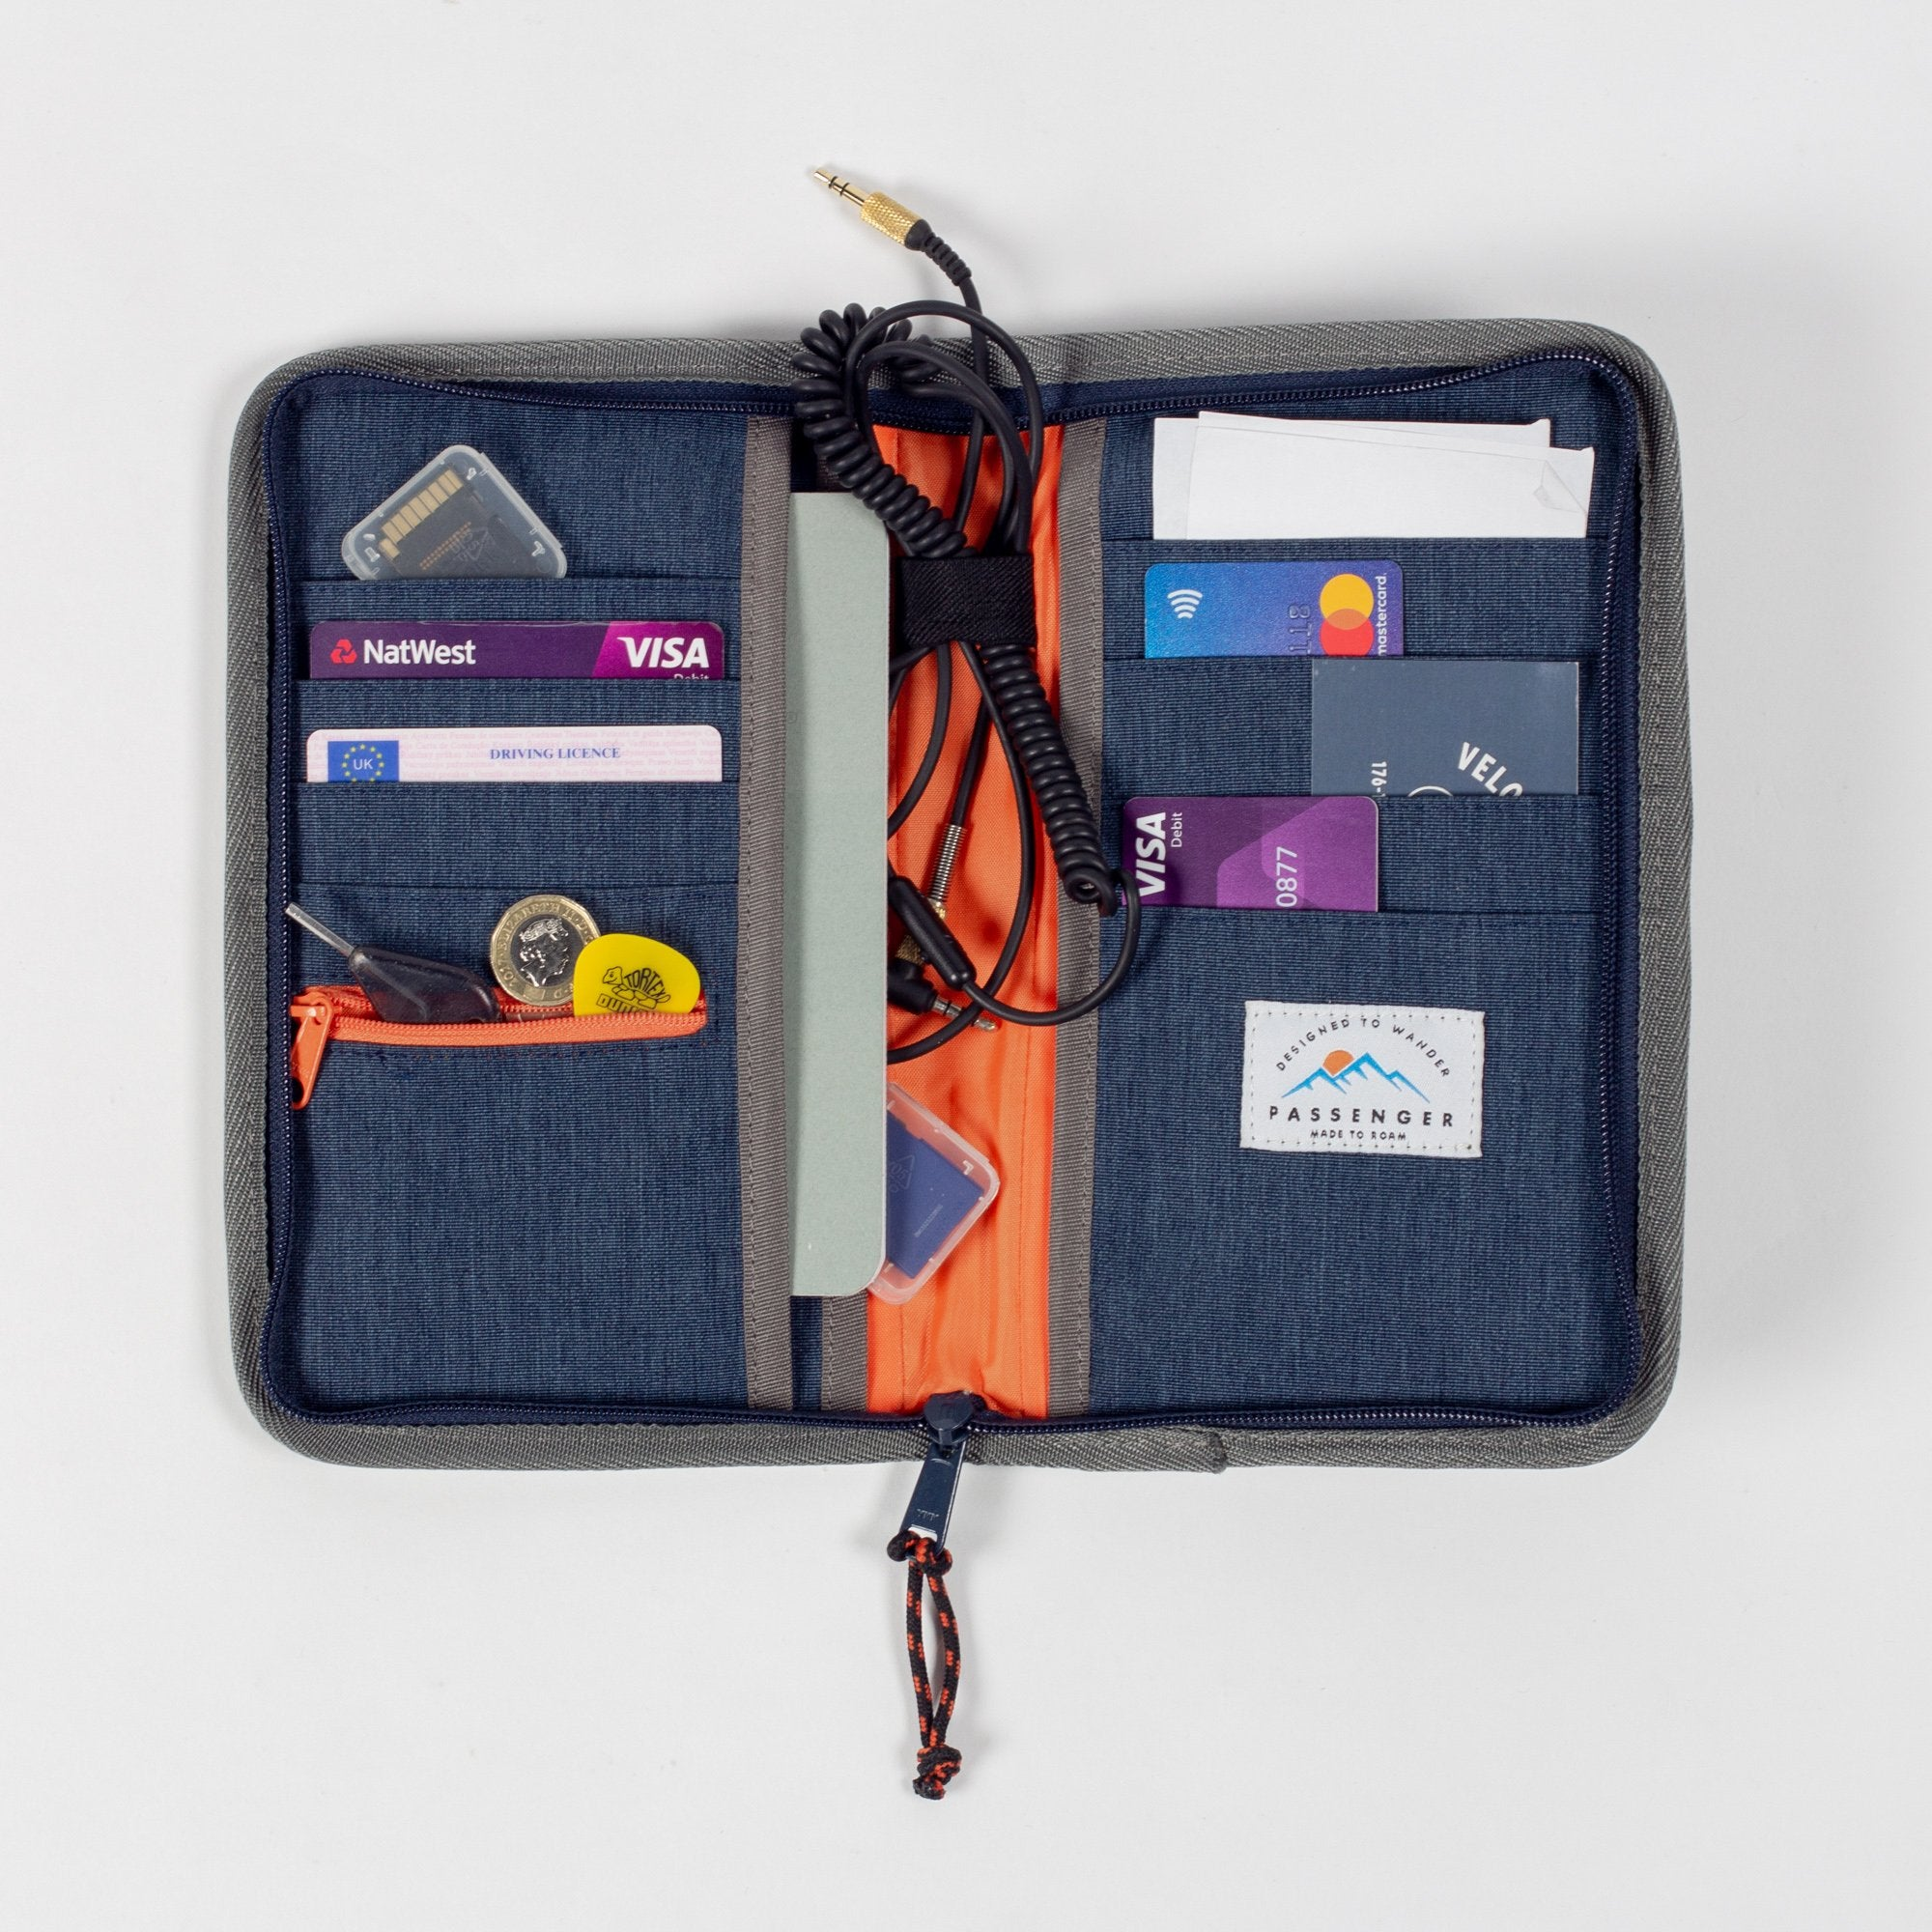 Raccoon Travel Organiser - Navy Marl image 1